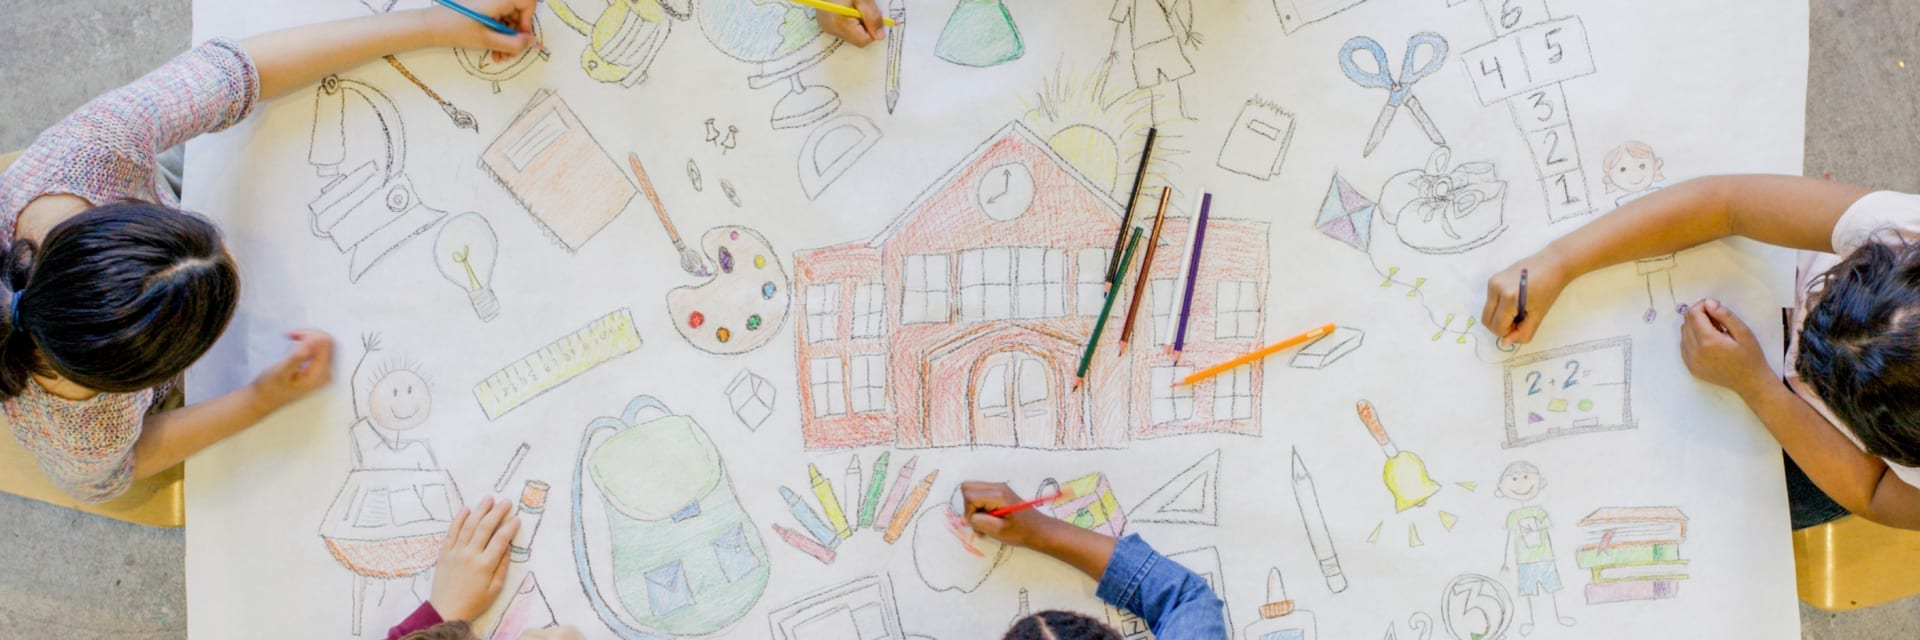 overhead view of children drawing on large piece of paper